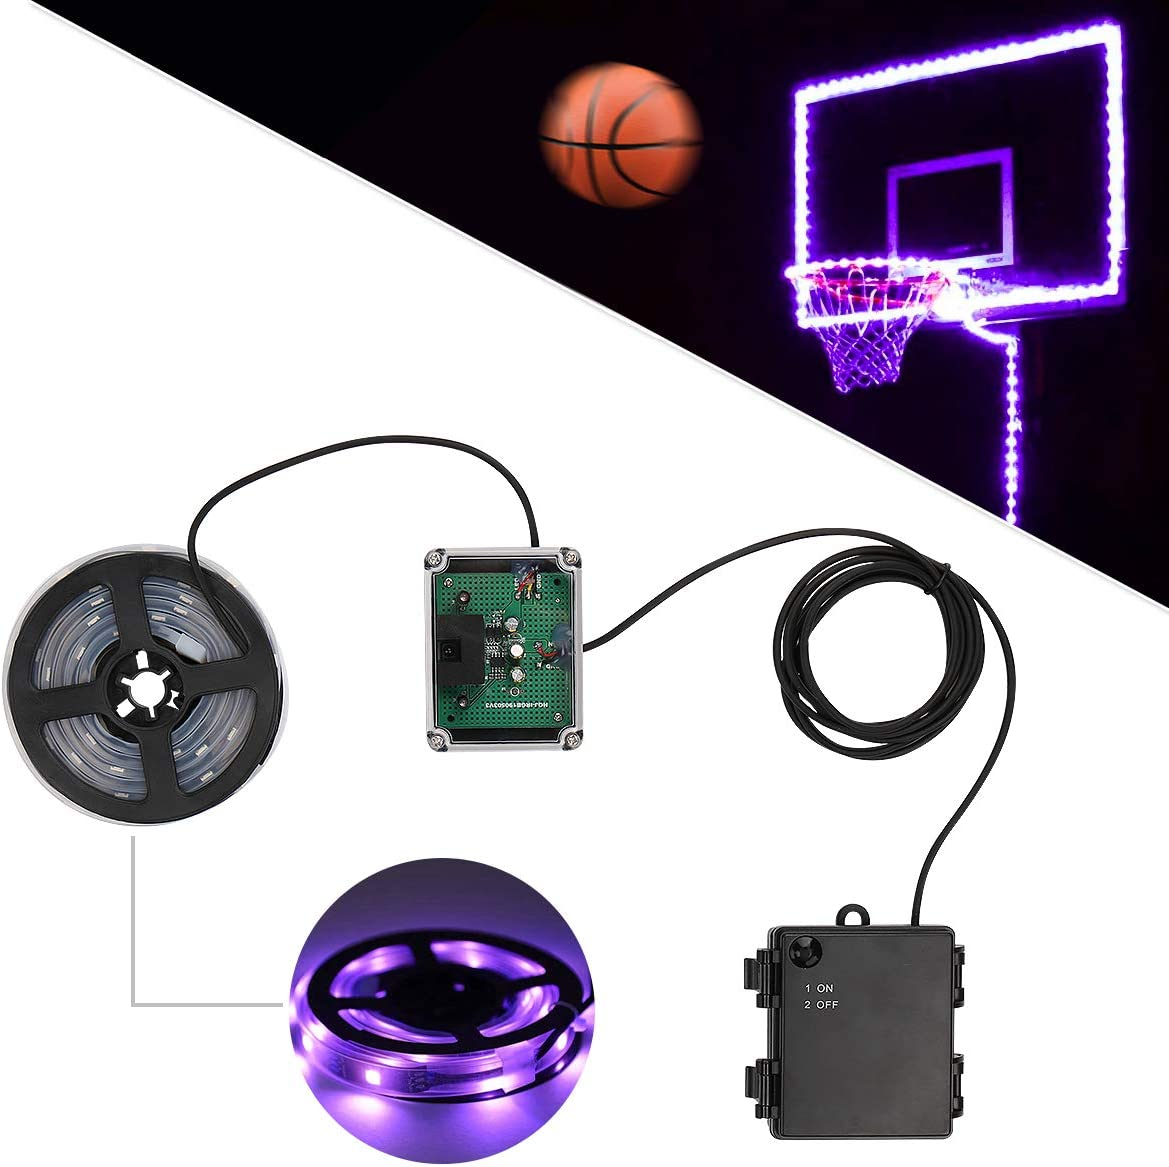 PiscatorZone LED Basketball Hoop Light, Goal Induction Innovative Outdoor High Precision Induction Color Changing LED Light Bar Basketball Hoop Lamp